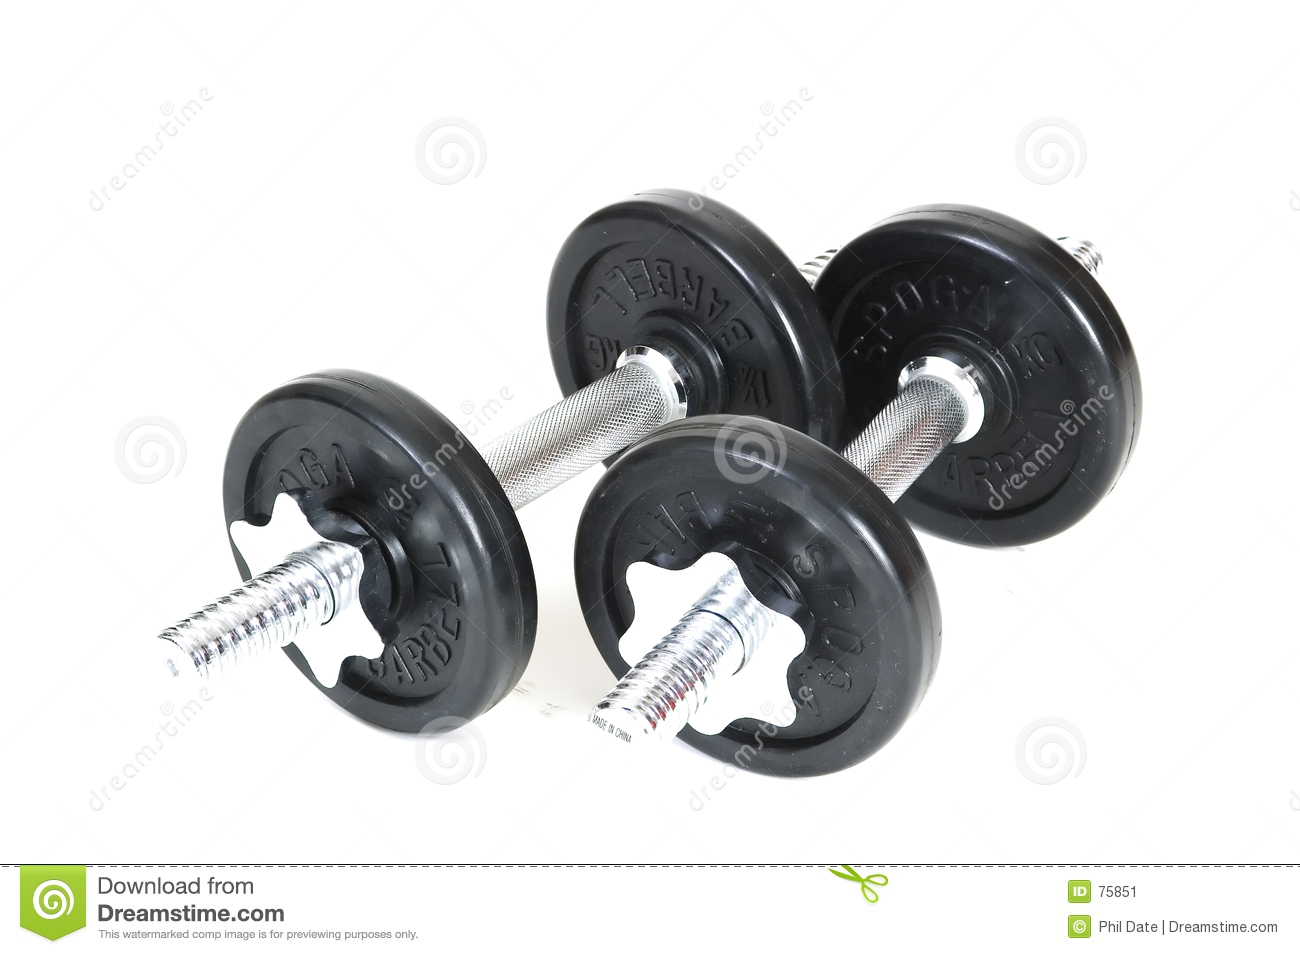 Dumbbells isolados